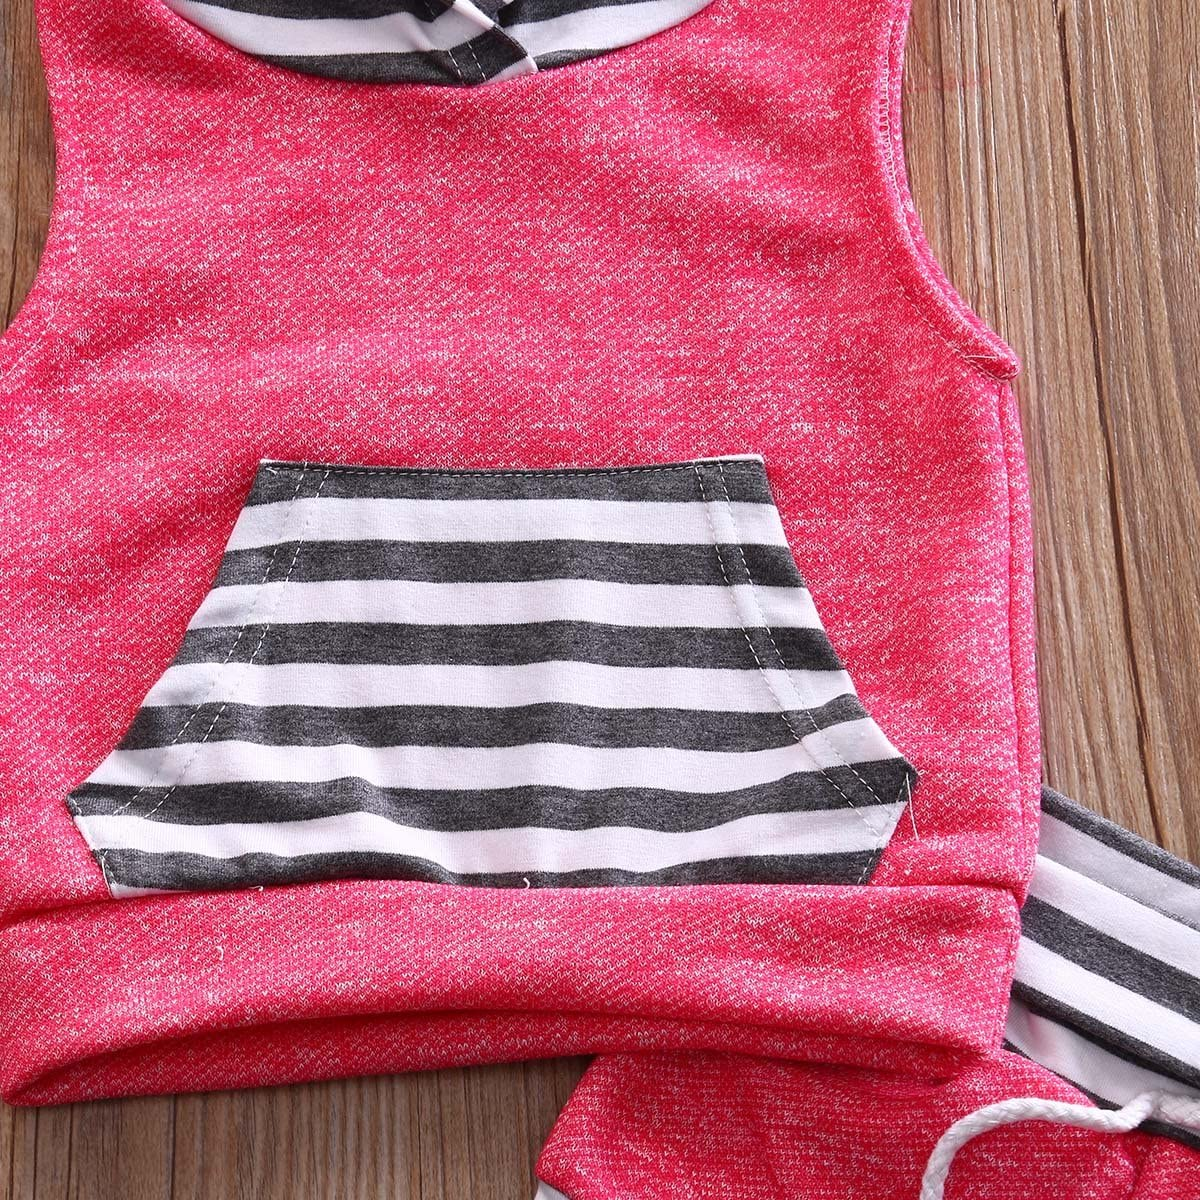 0-4Y Baby Boy Girl 2pcs Set Outfit Brown//Grey//Red Sleeveless Striped Hoodie+Short Pants